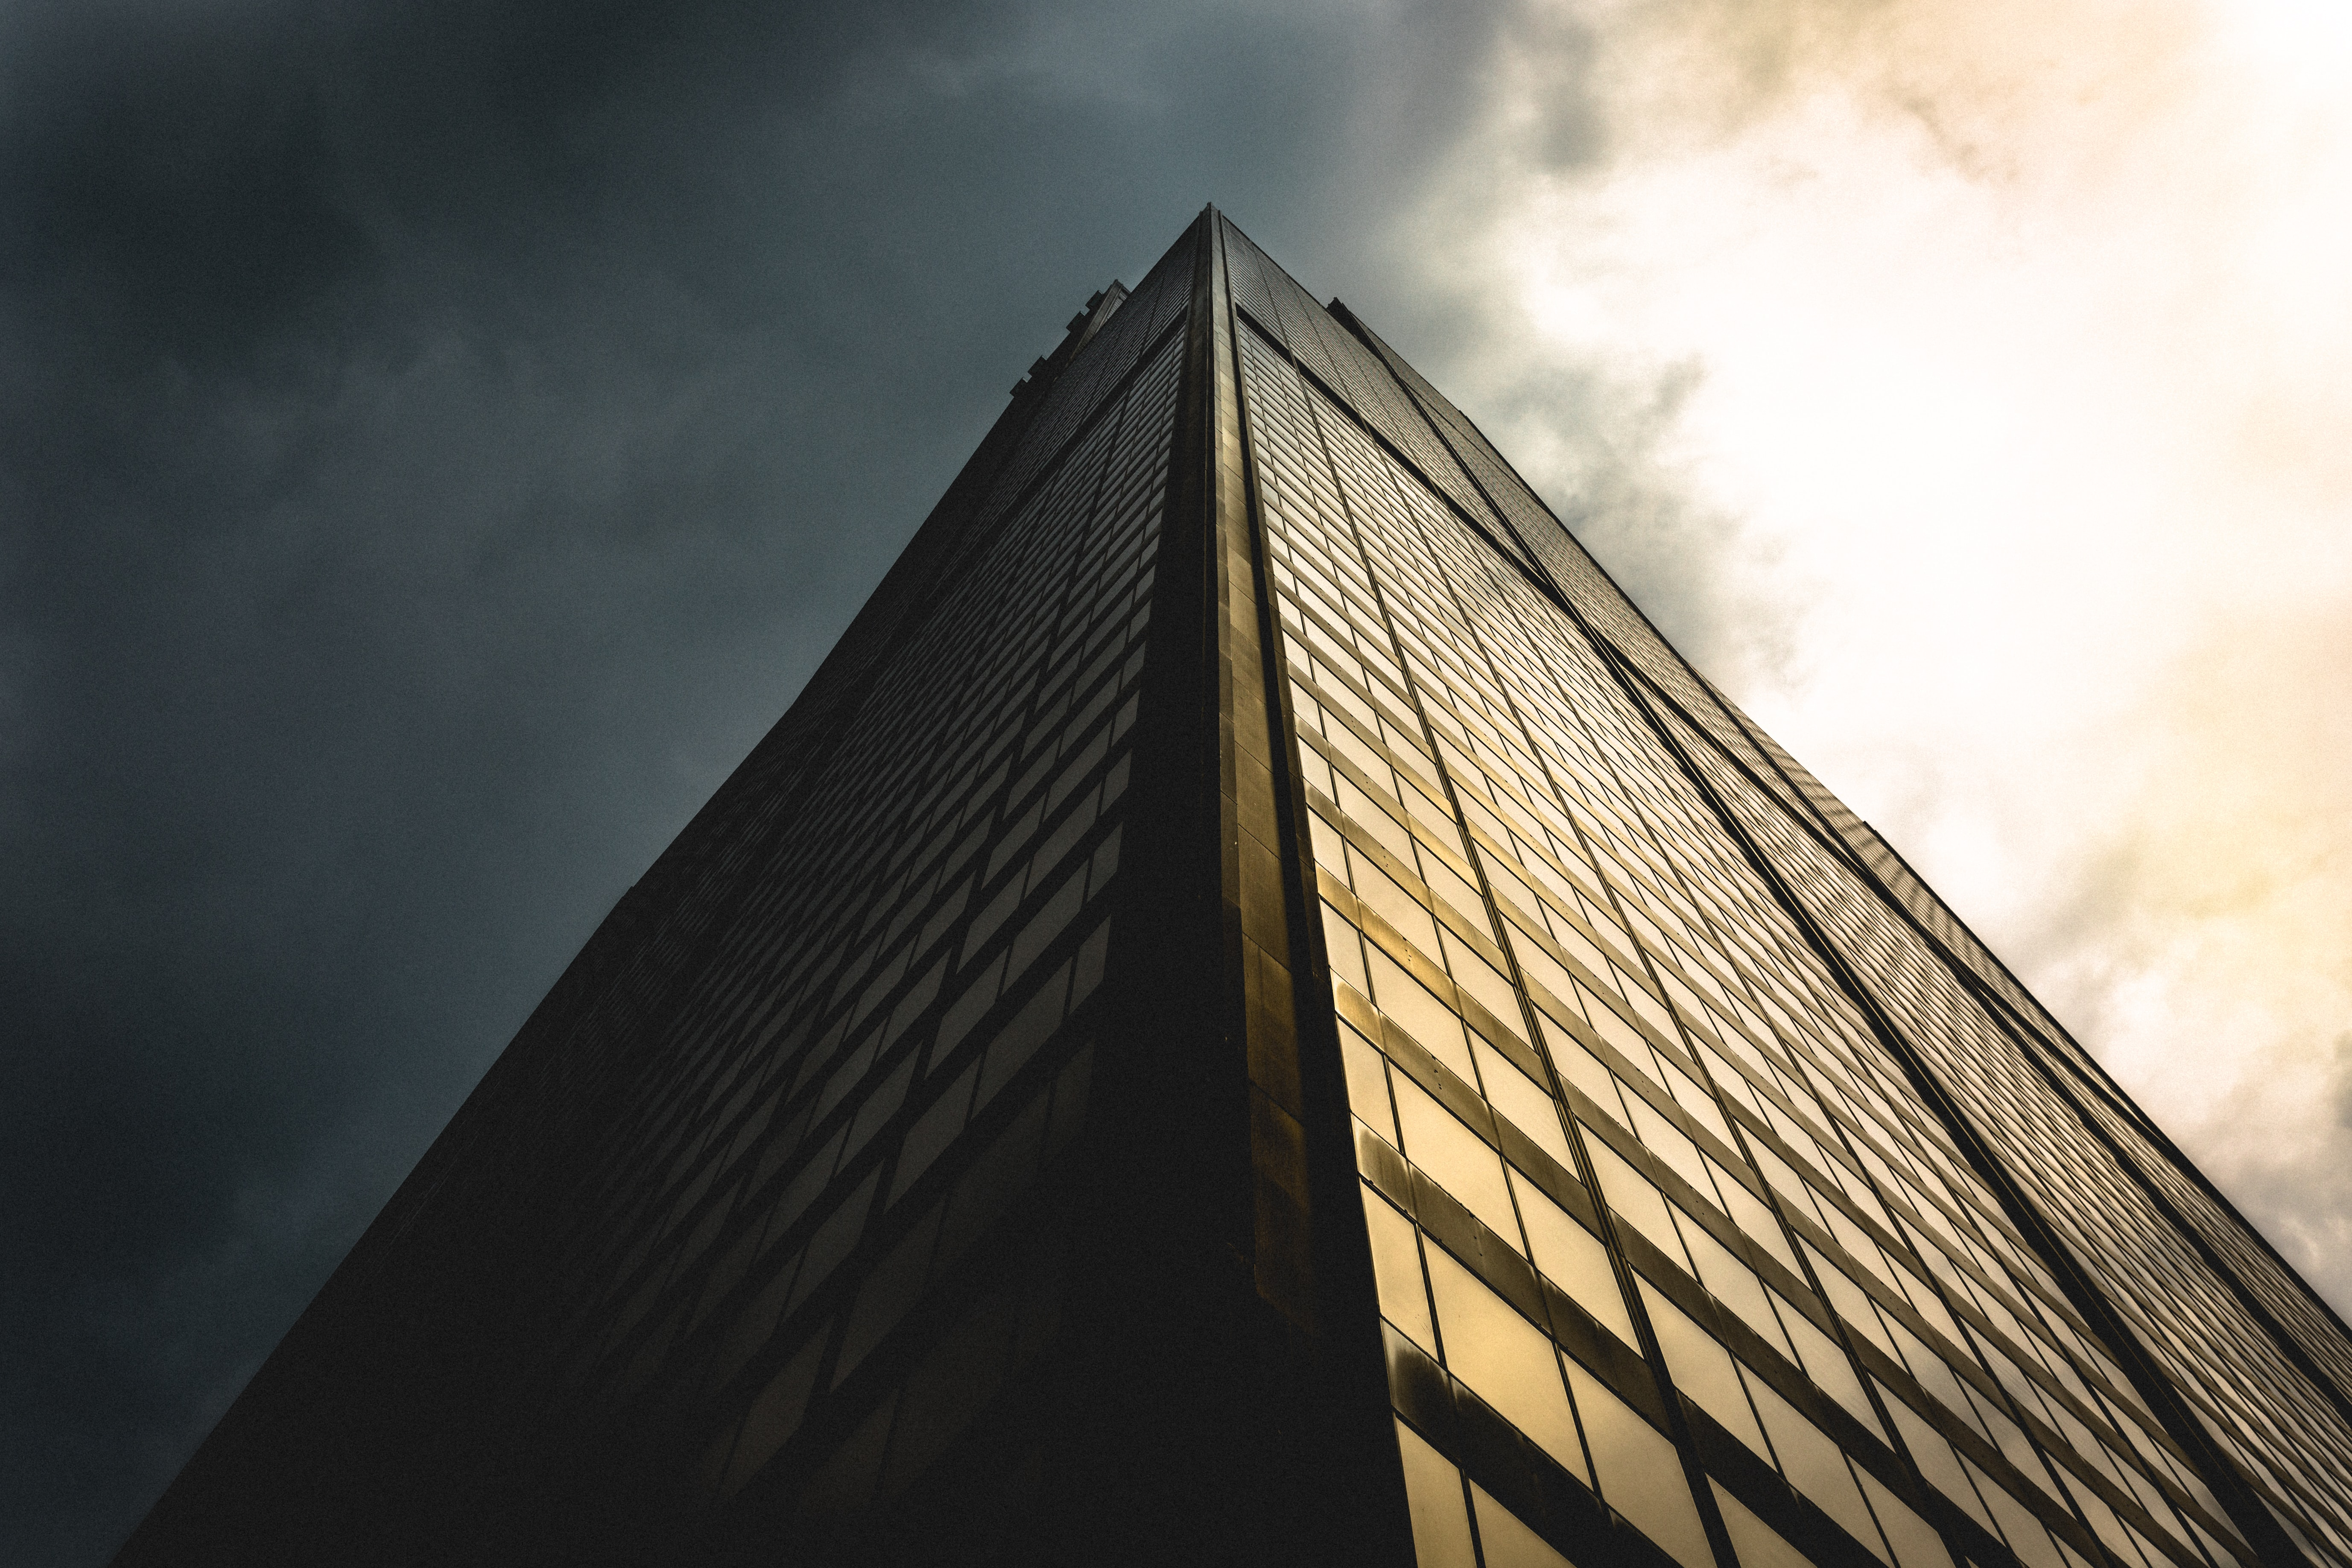 gray sky above black building low angle photography